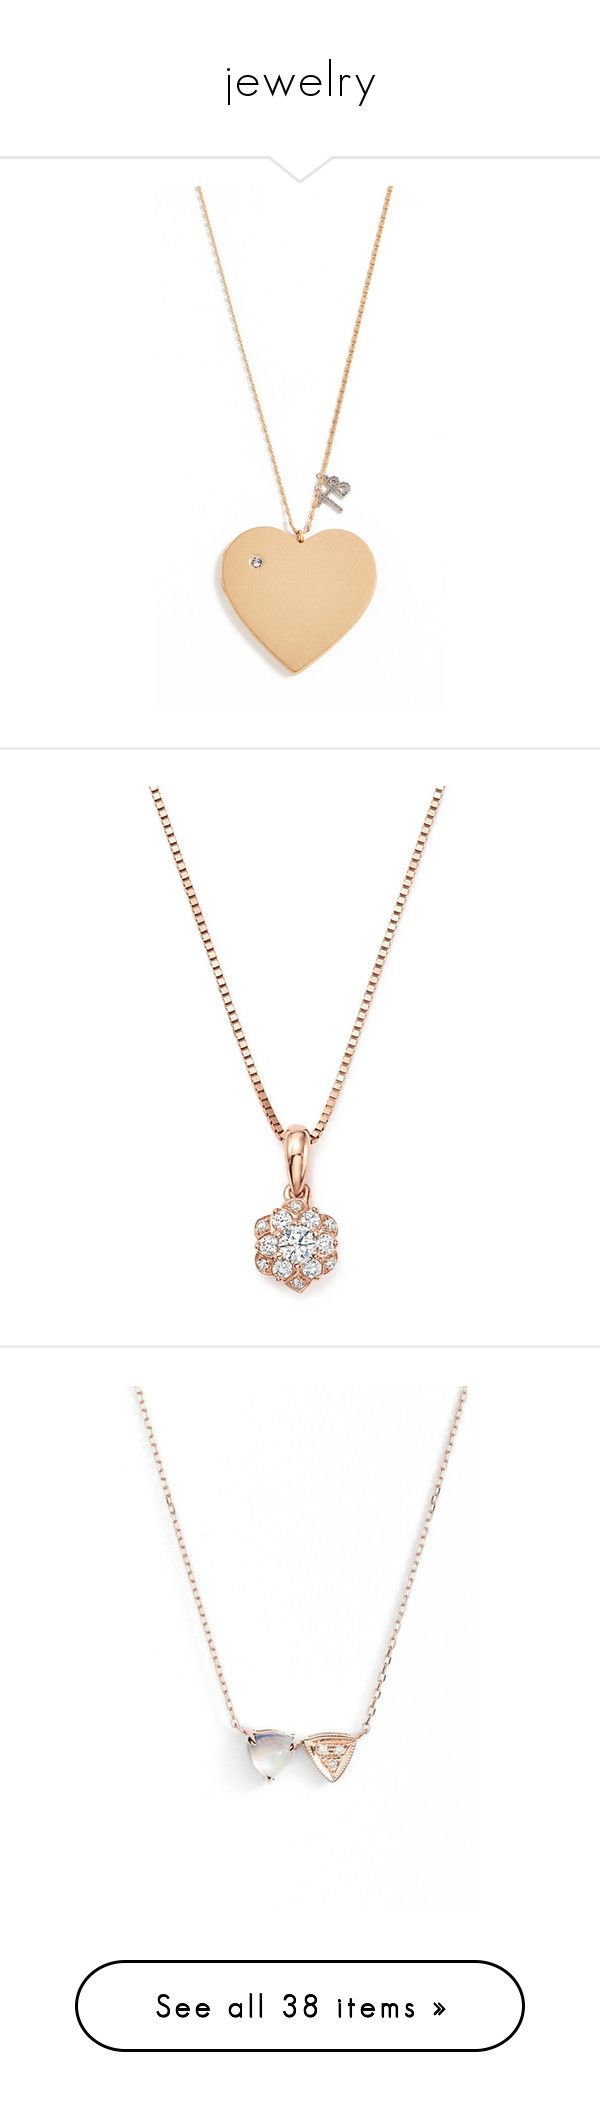 """""""jewelry"""" by blossomfade ❤ liked on Polyvore featuring jewelry, necklaces, vintage gold, heart pendant necklace, vintage heart locket, heart necklaces, gold heart necklace, yellow gold heart necklace, diamond chain necklaces and 14k rose gold pendant"""